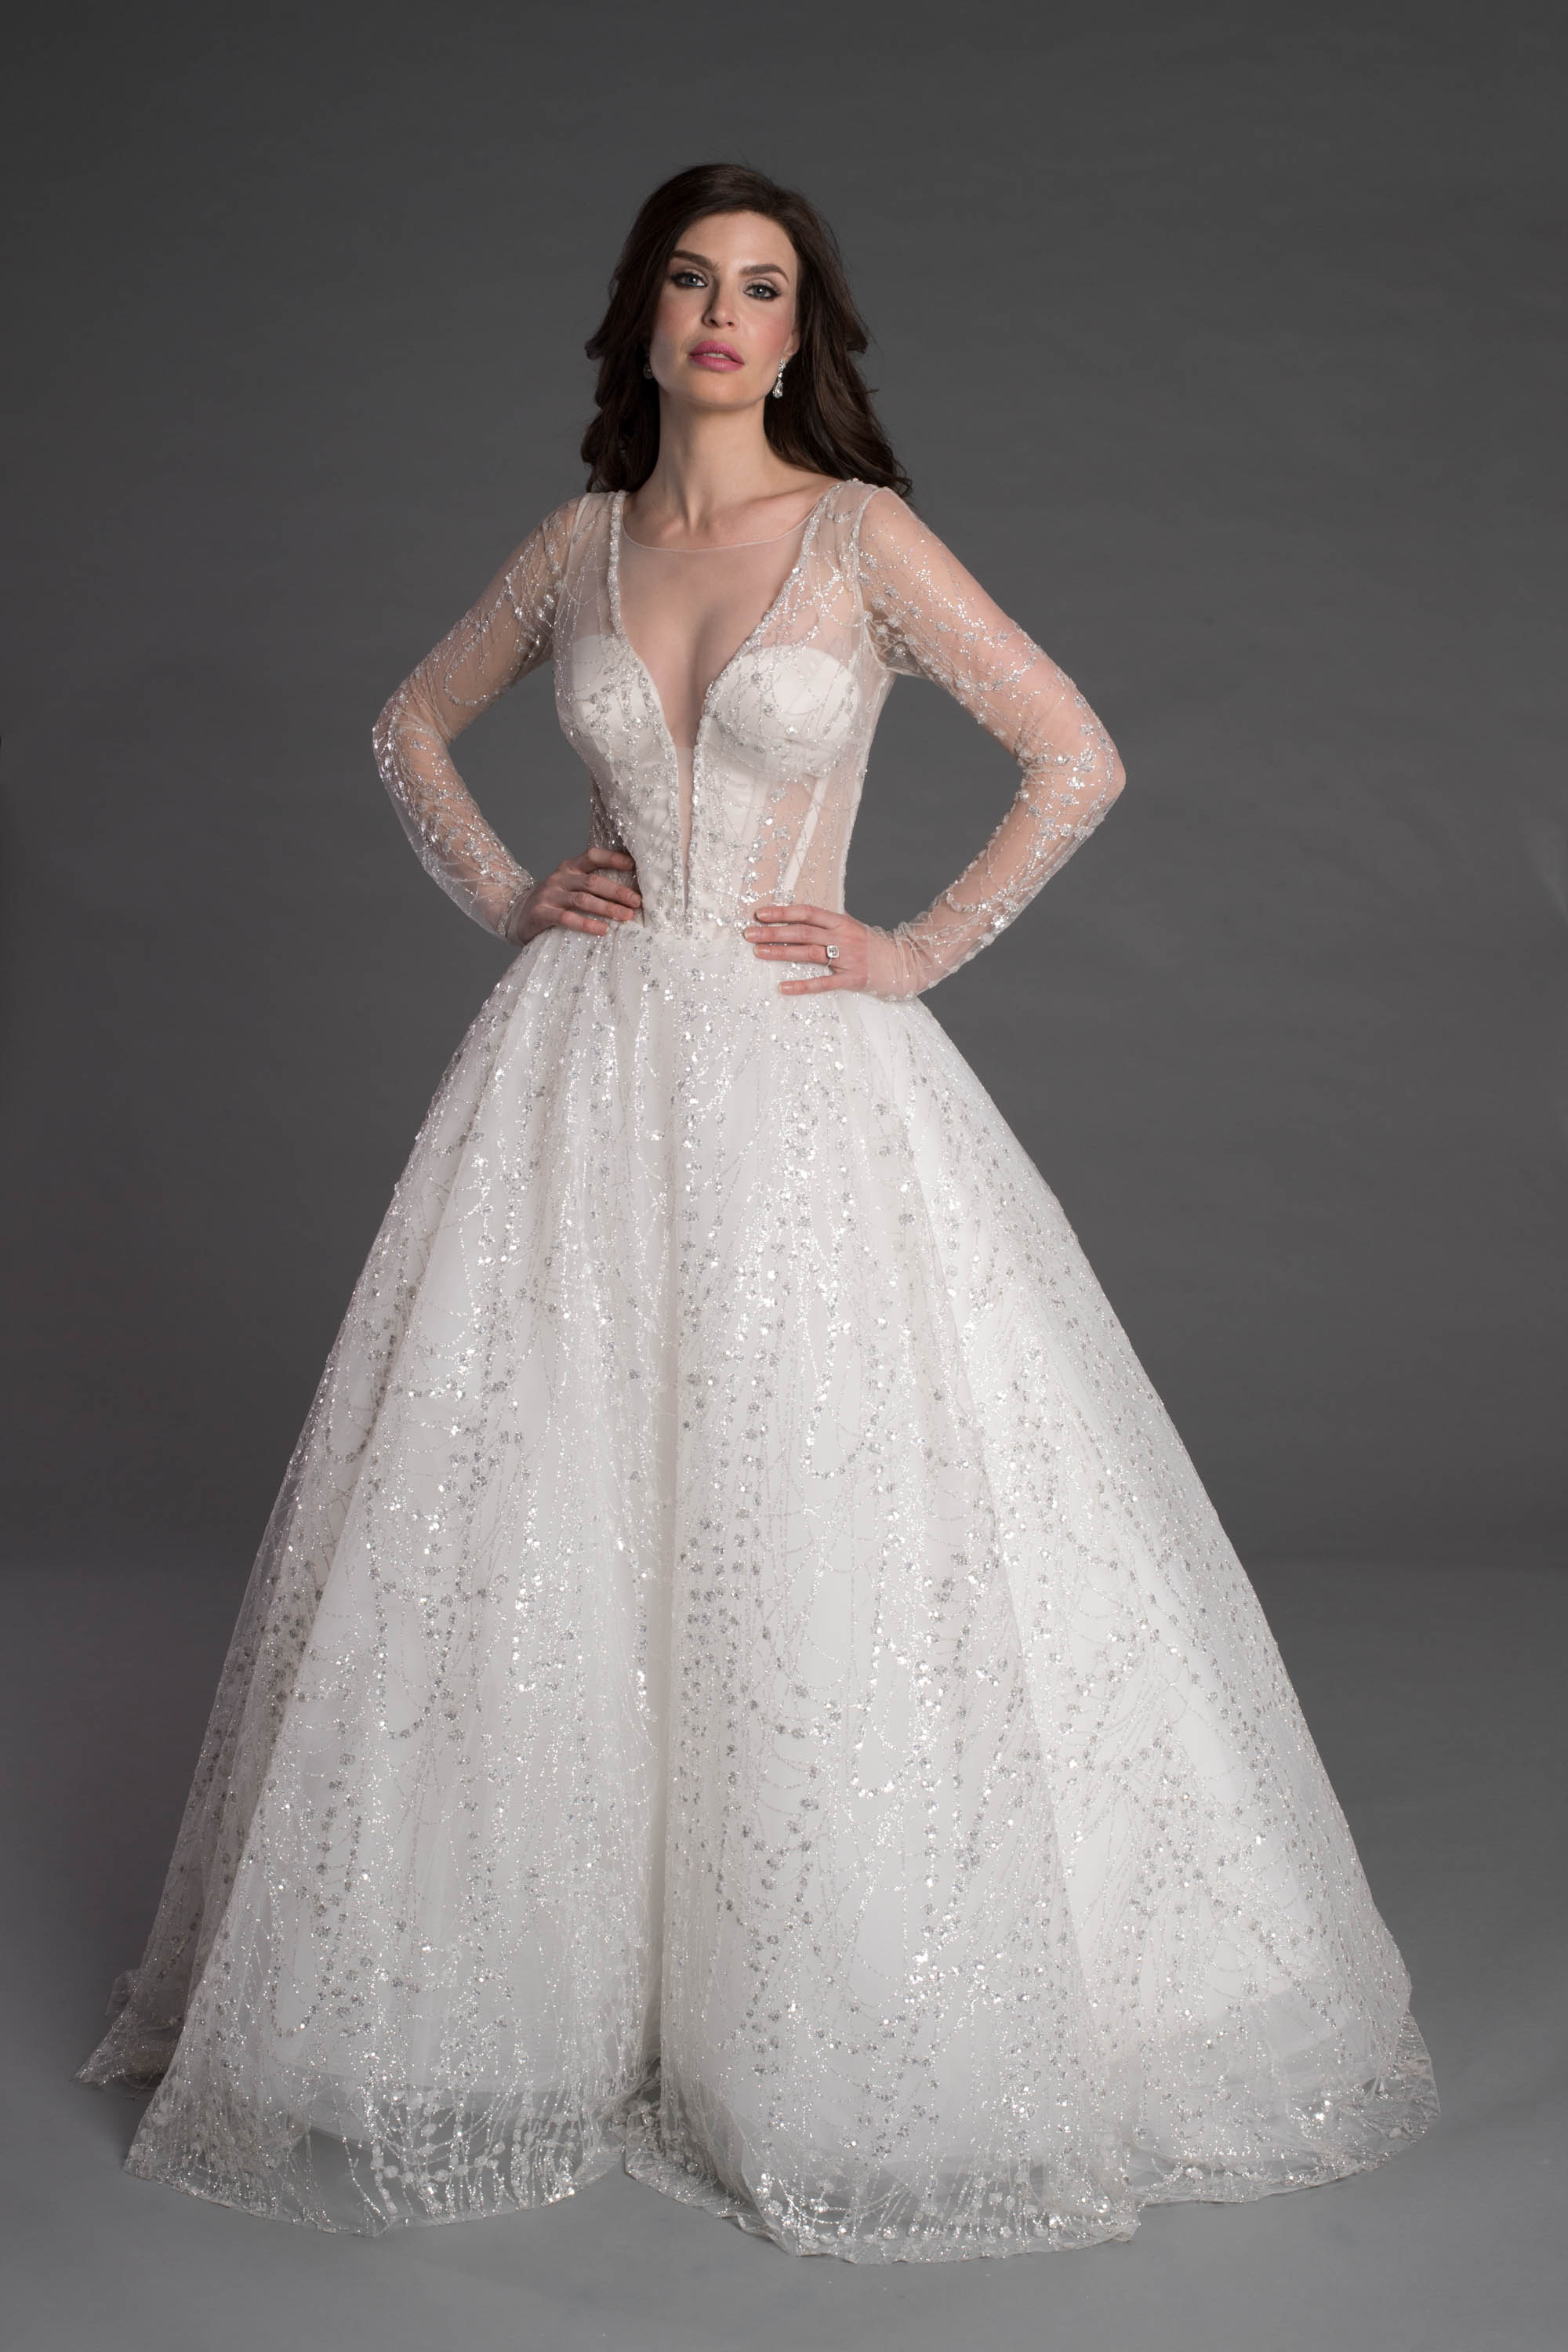 Long Sleeve Ball Gown With Corset And Illusion Neckline   Kleinfeld ...